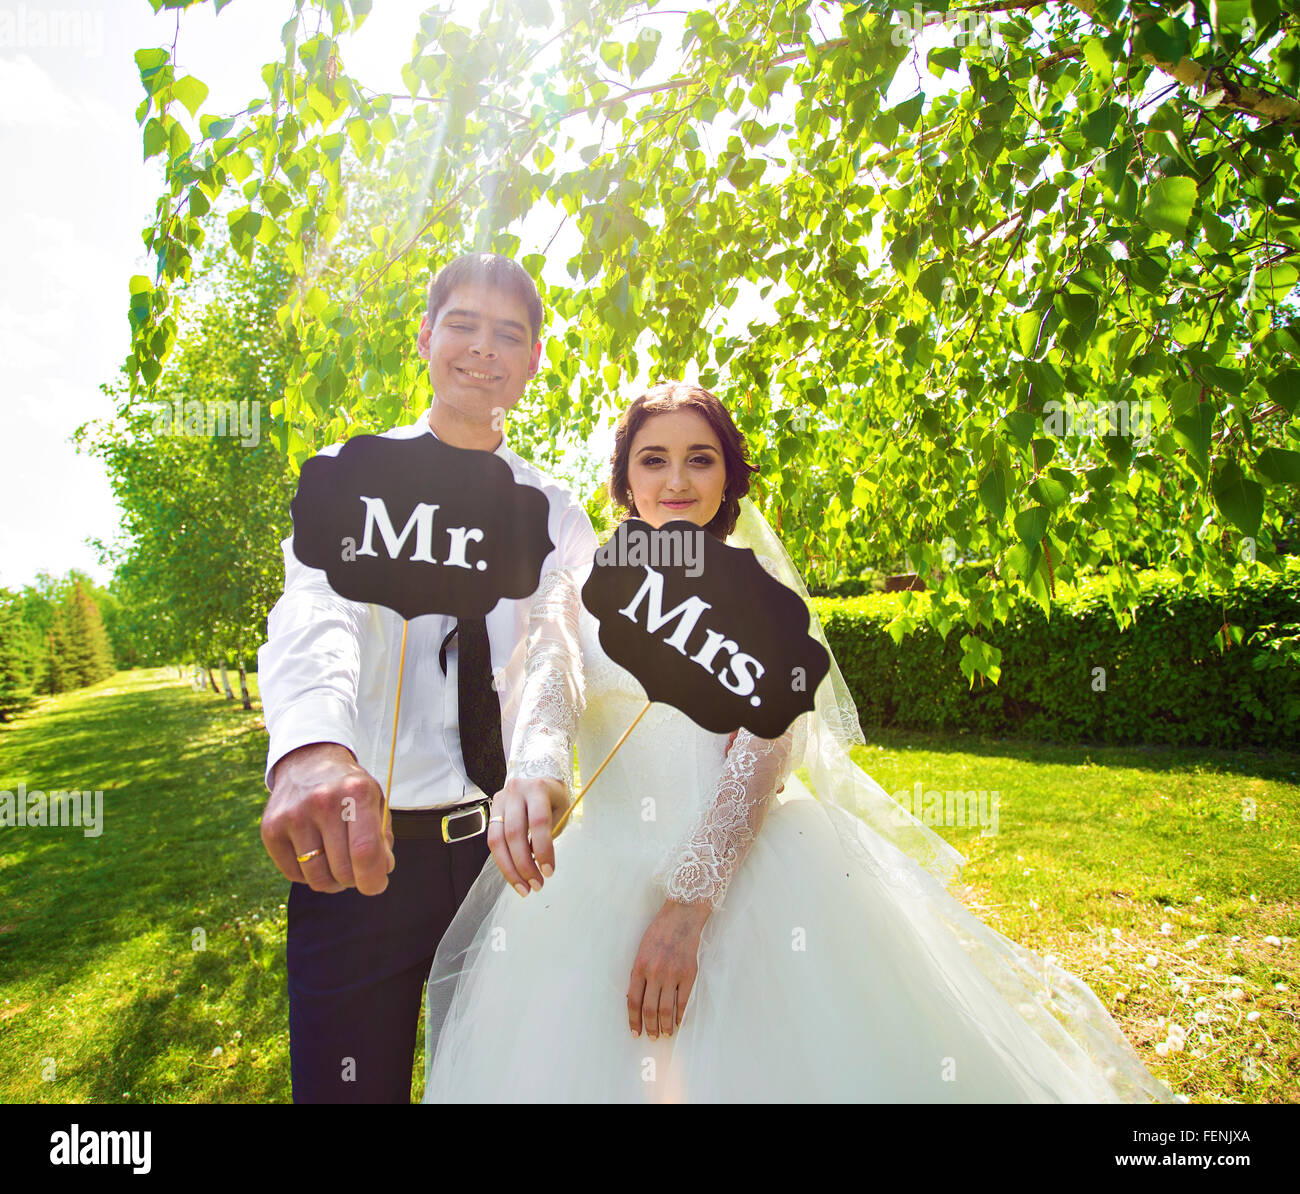 Funny bride and groom with Mr and Mrs signs. Happy wedding day Stock ...